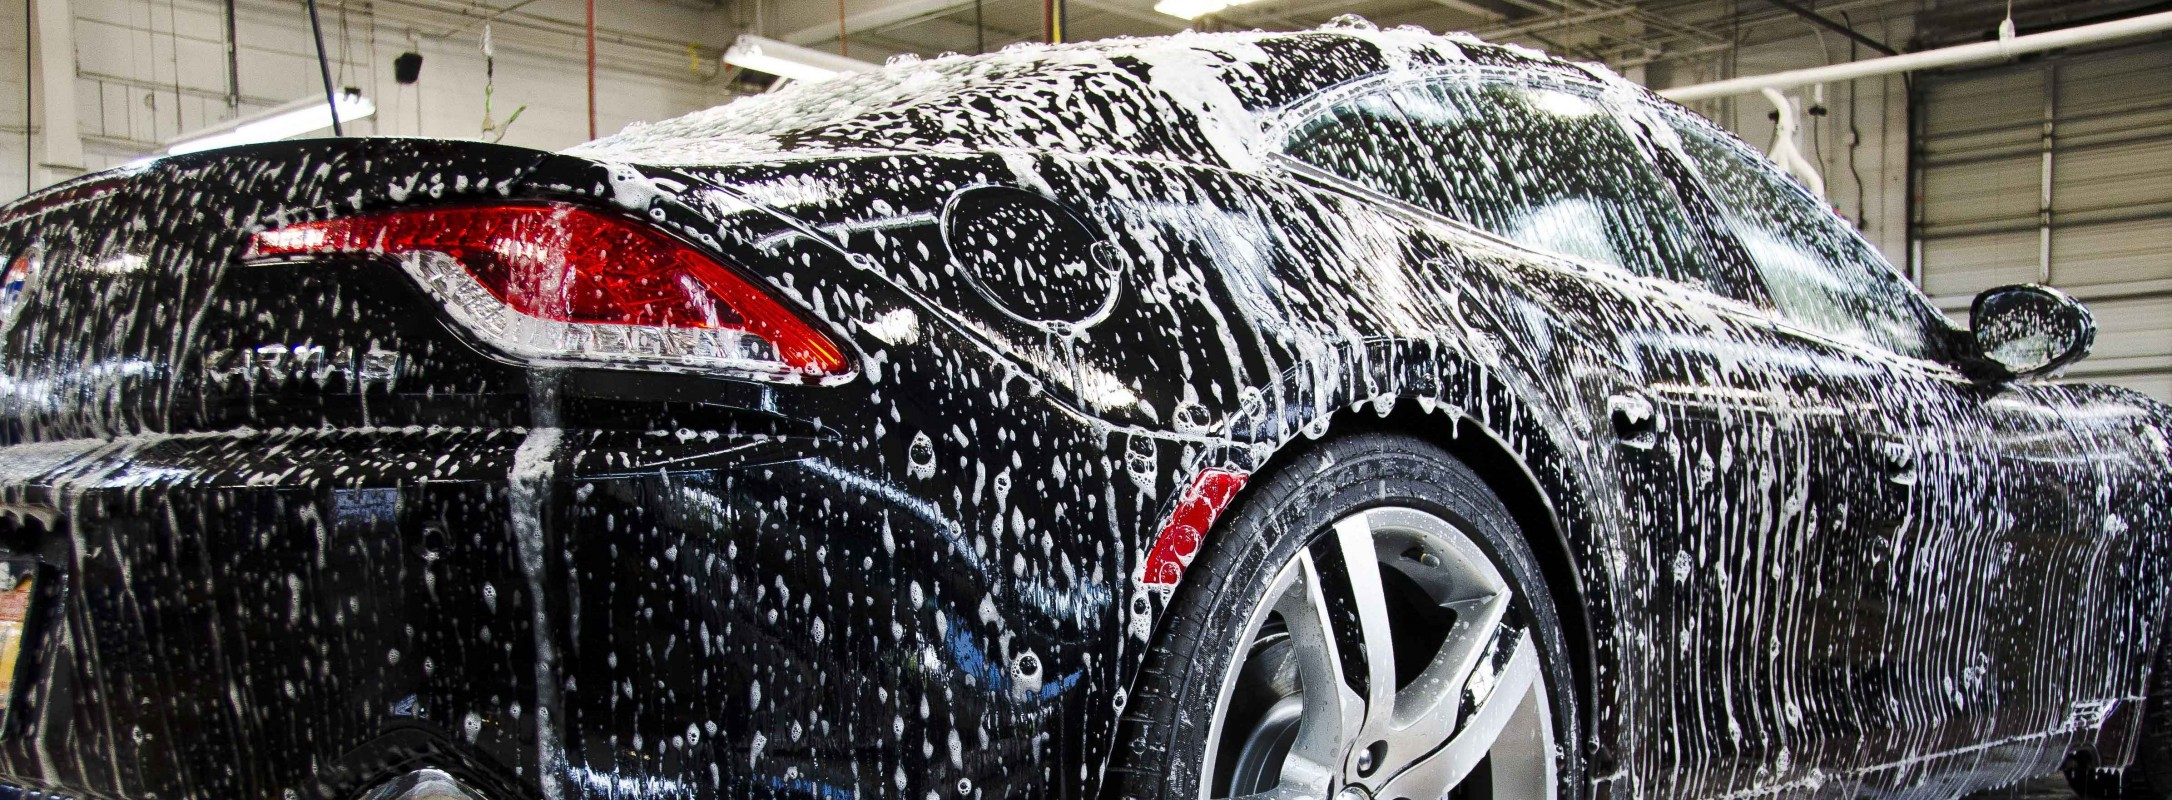 ECO-FRIENDLY CAR WASH - Auto Detailing San Diego